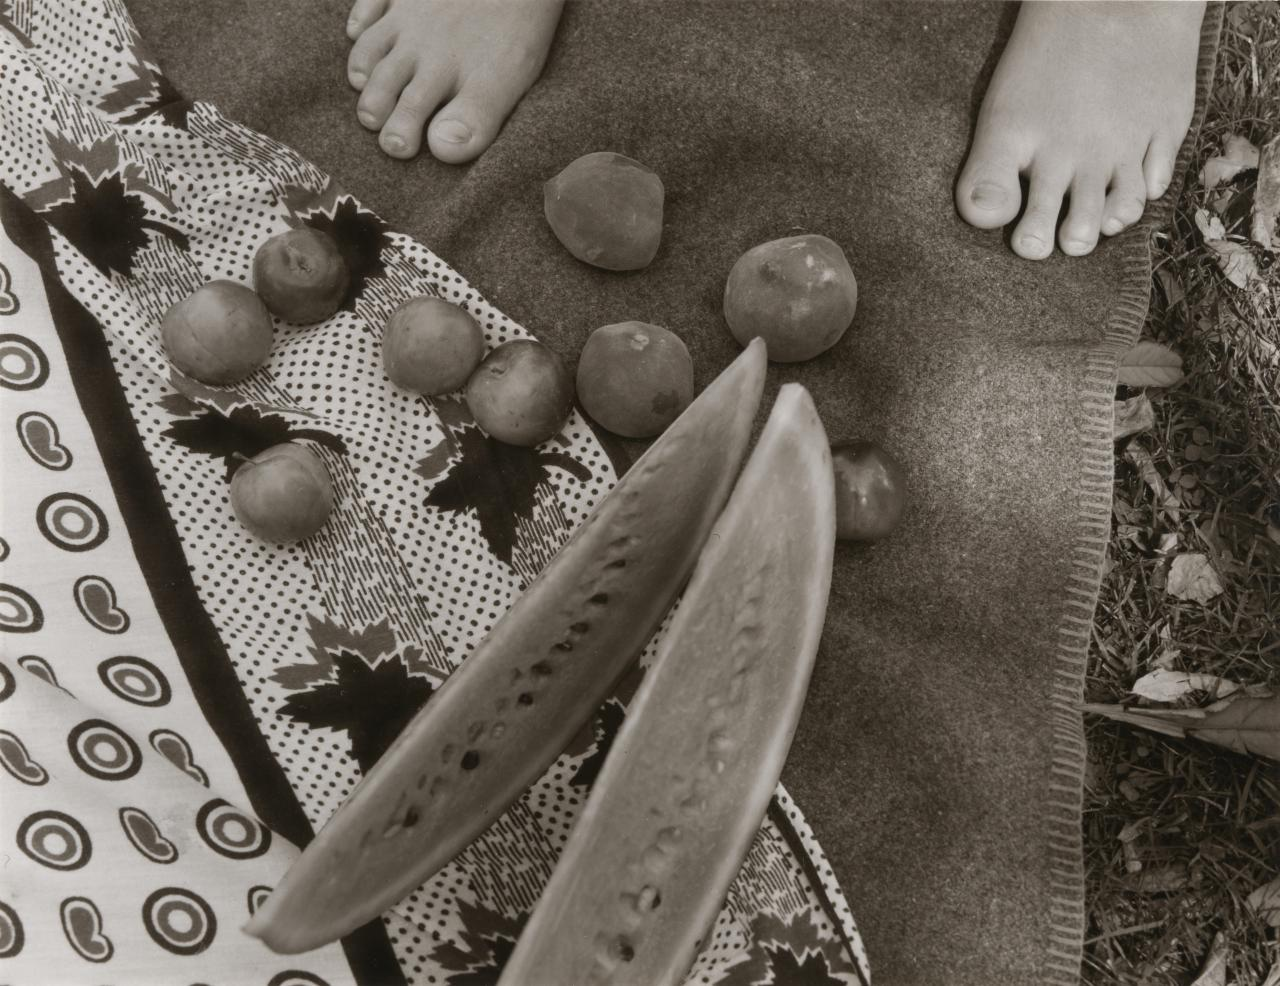 No title (child's feet and fruit)